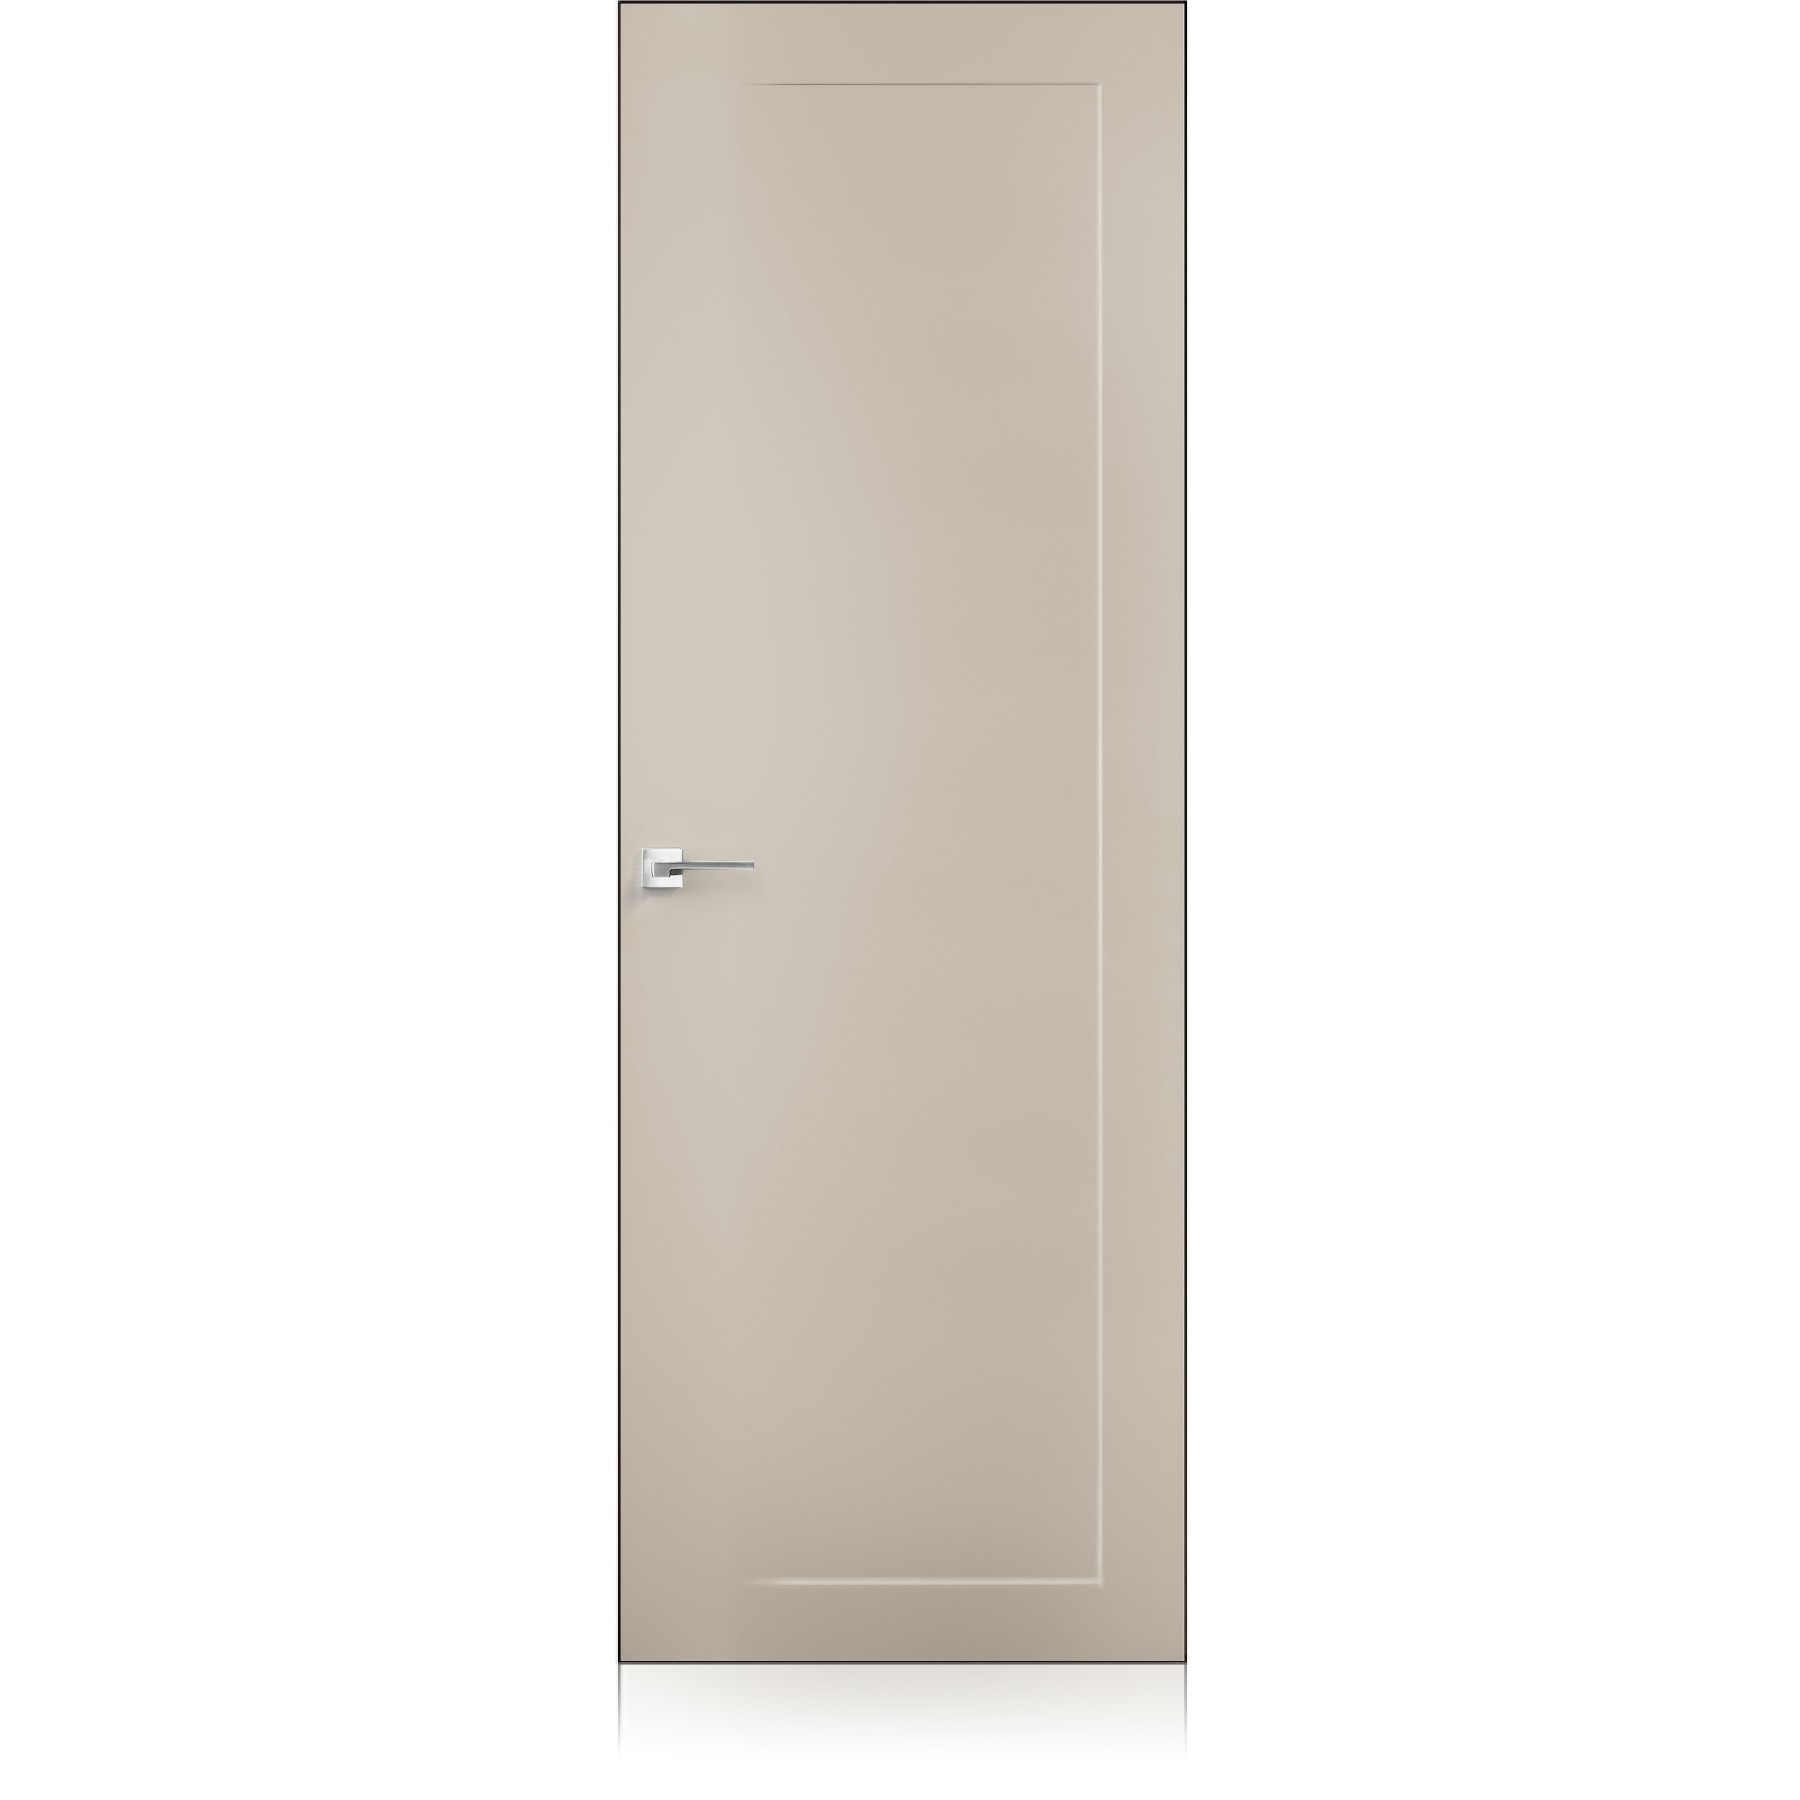 Suite / 9 Zero tortora door